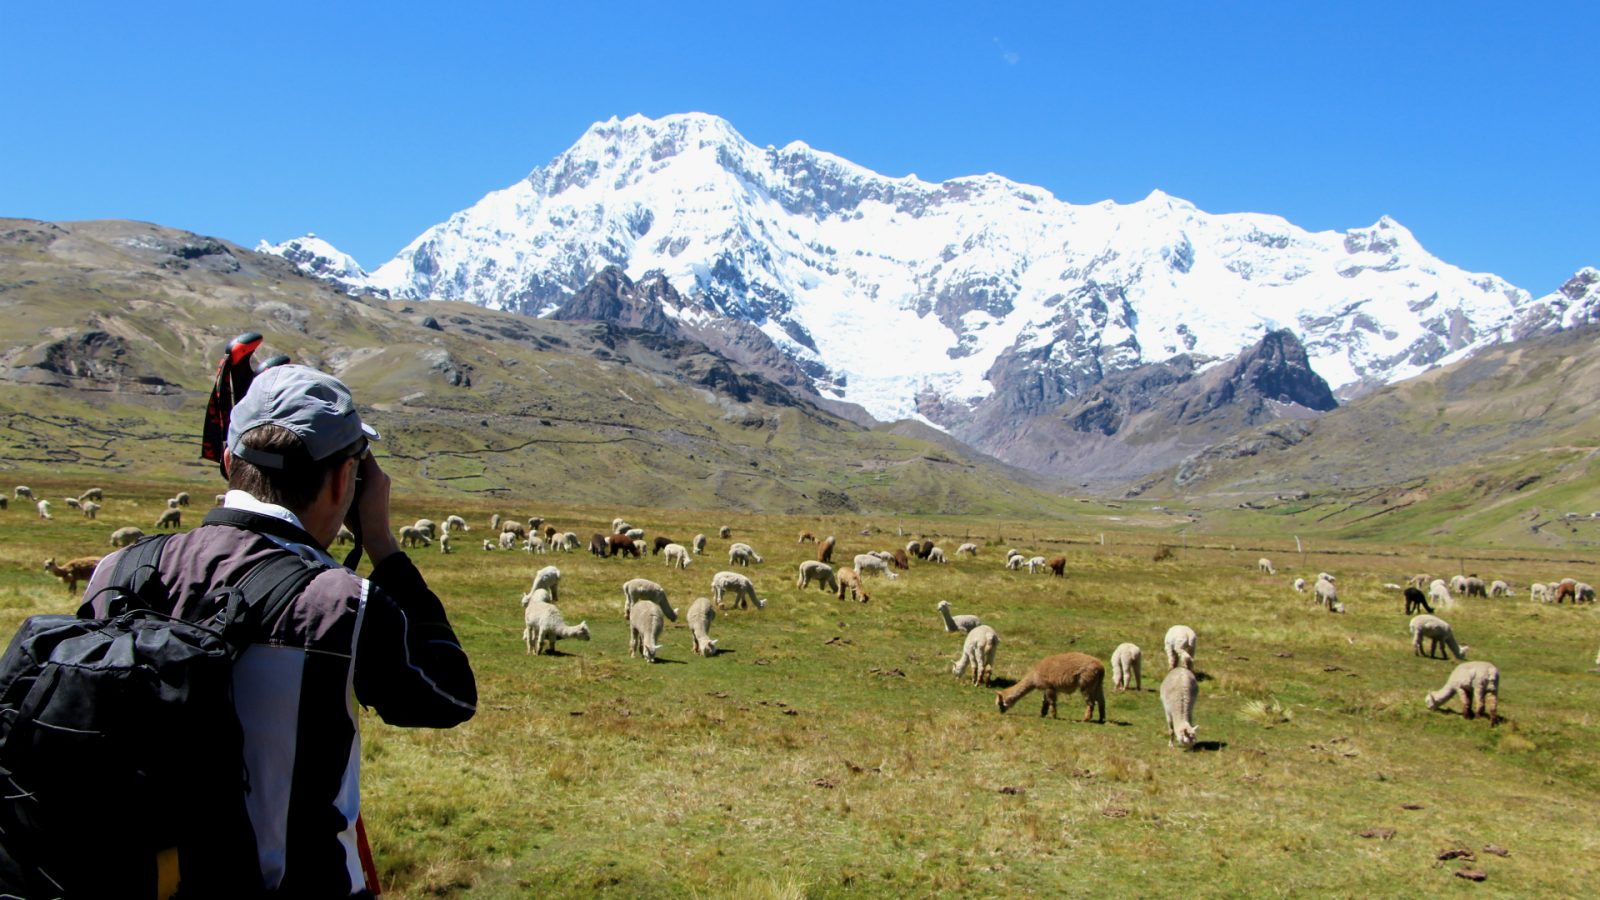 Ausangate Trek 5 days by inka trail trek